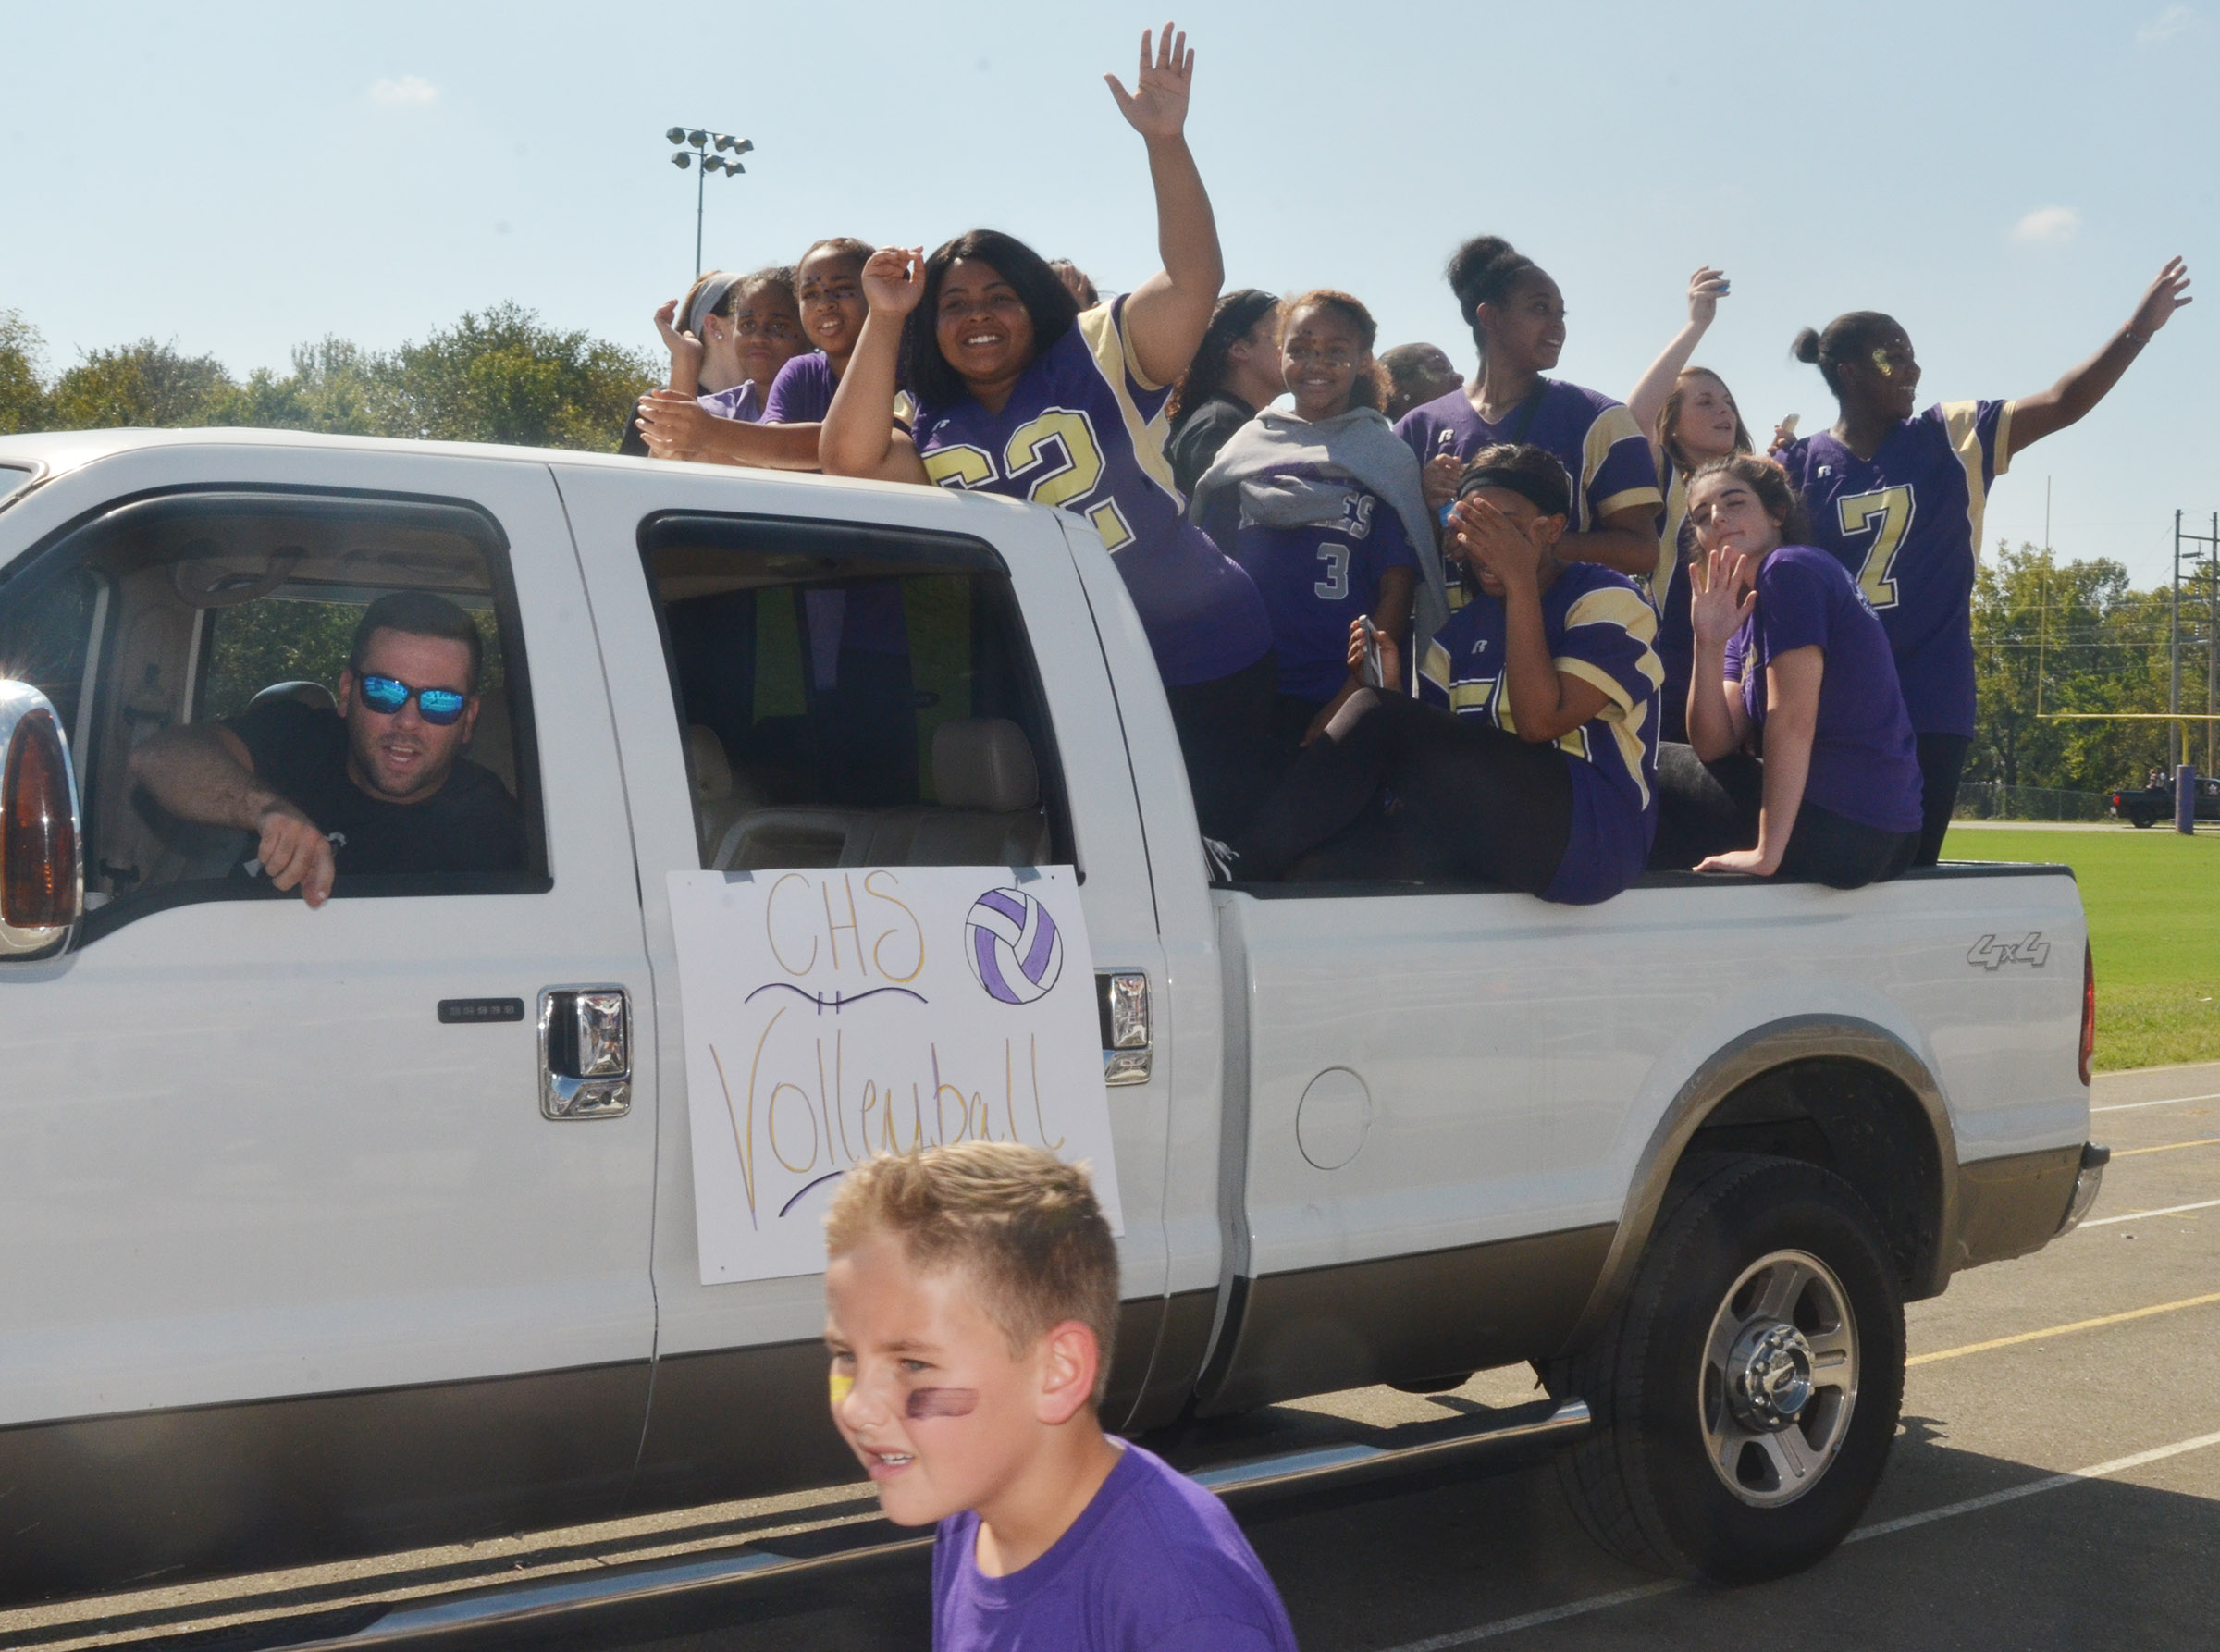 CHS volleyball players ride in the parade.